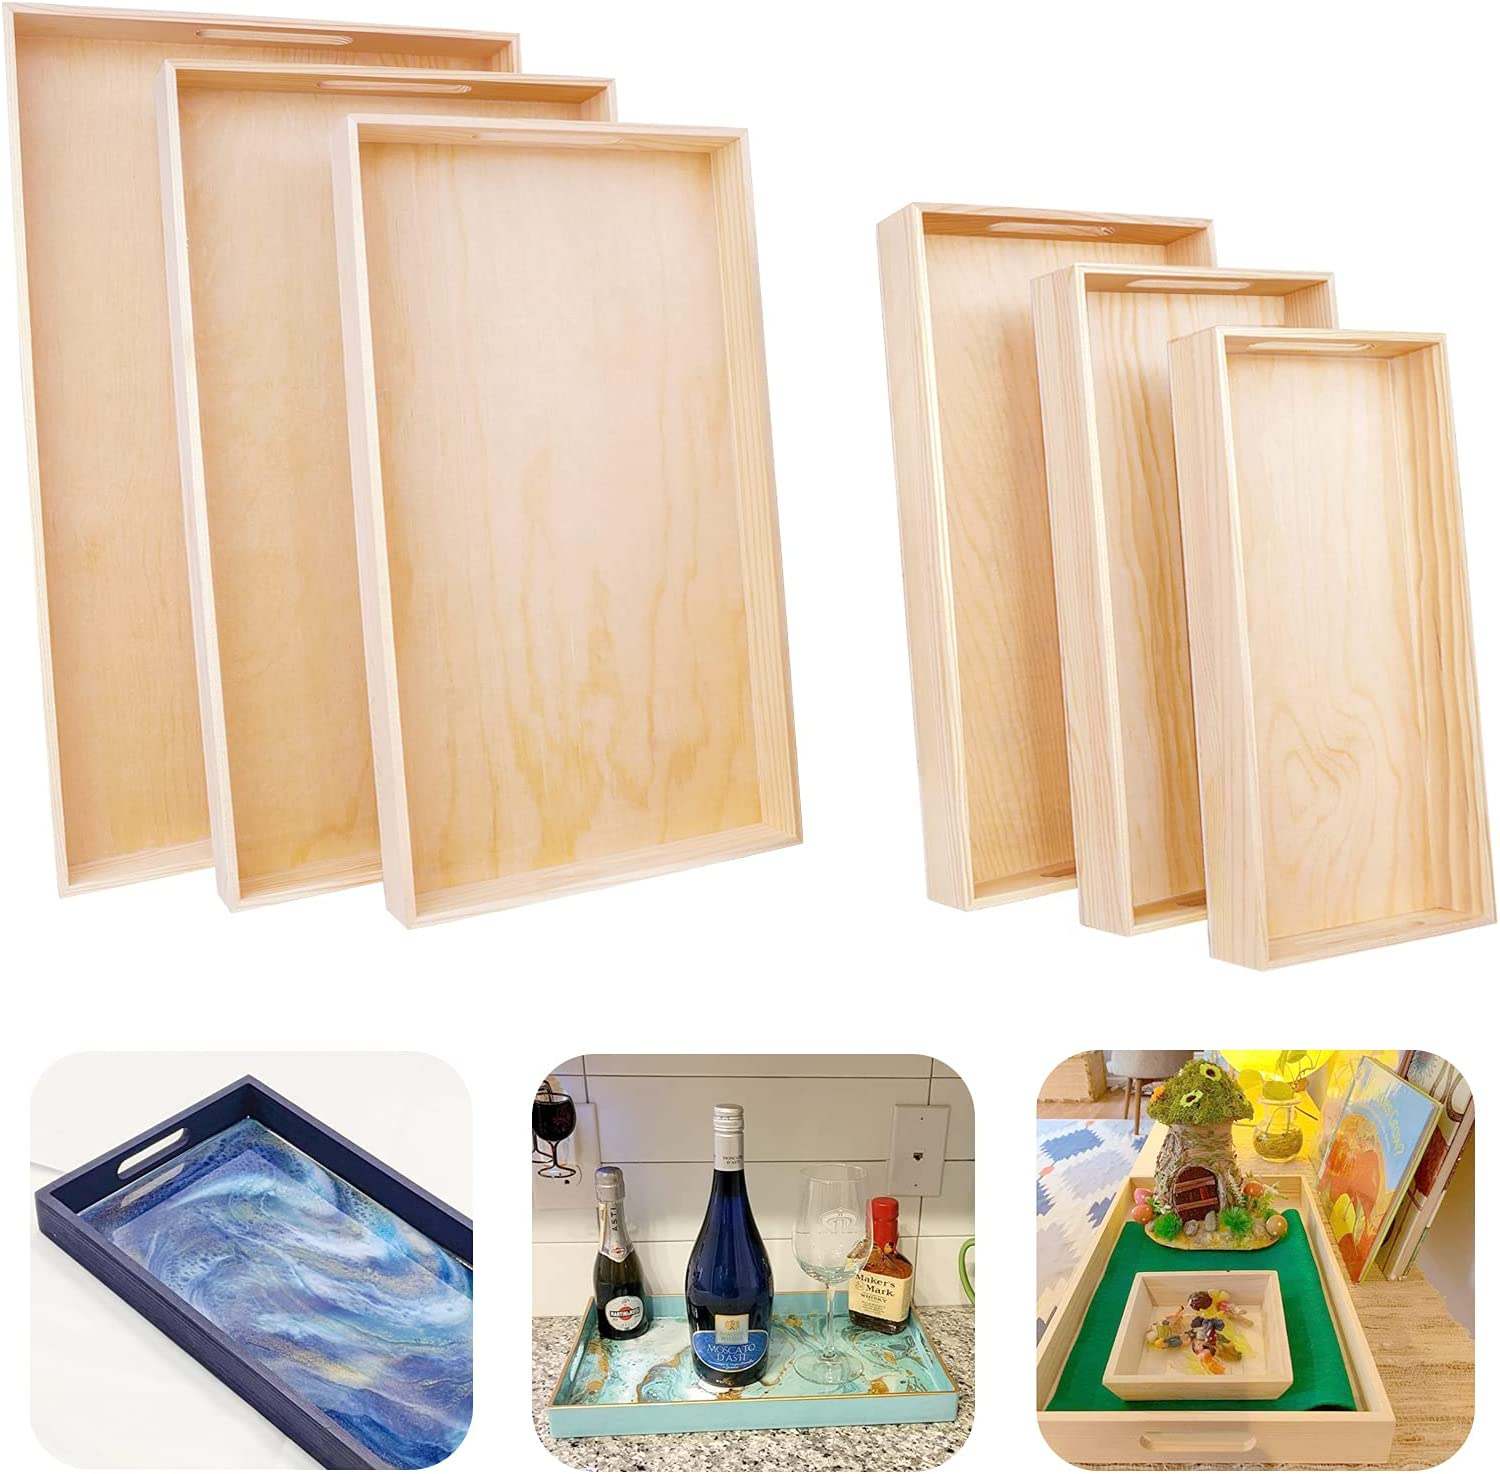 6 Pcs Wooden Serving Trays - Unfinished Reinforced Wooden Decorative Trays with Handles, DIY Crafts Differdent Food Tray Set for Breakfast, Dinner, Tea ,Coffee Table, BBQ, Party(12